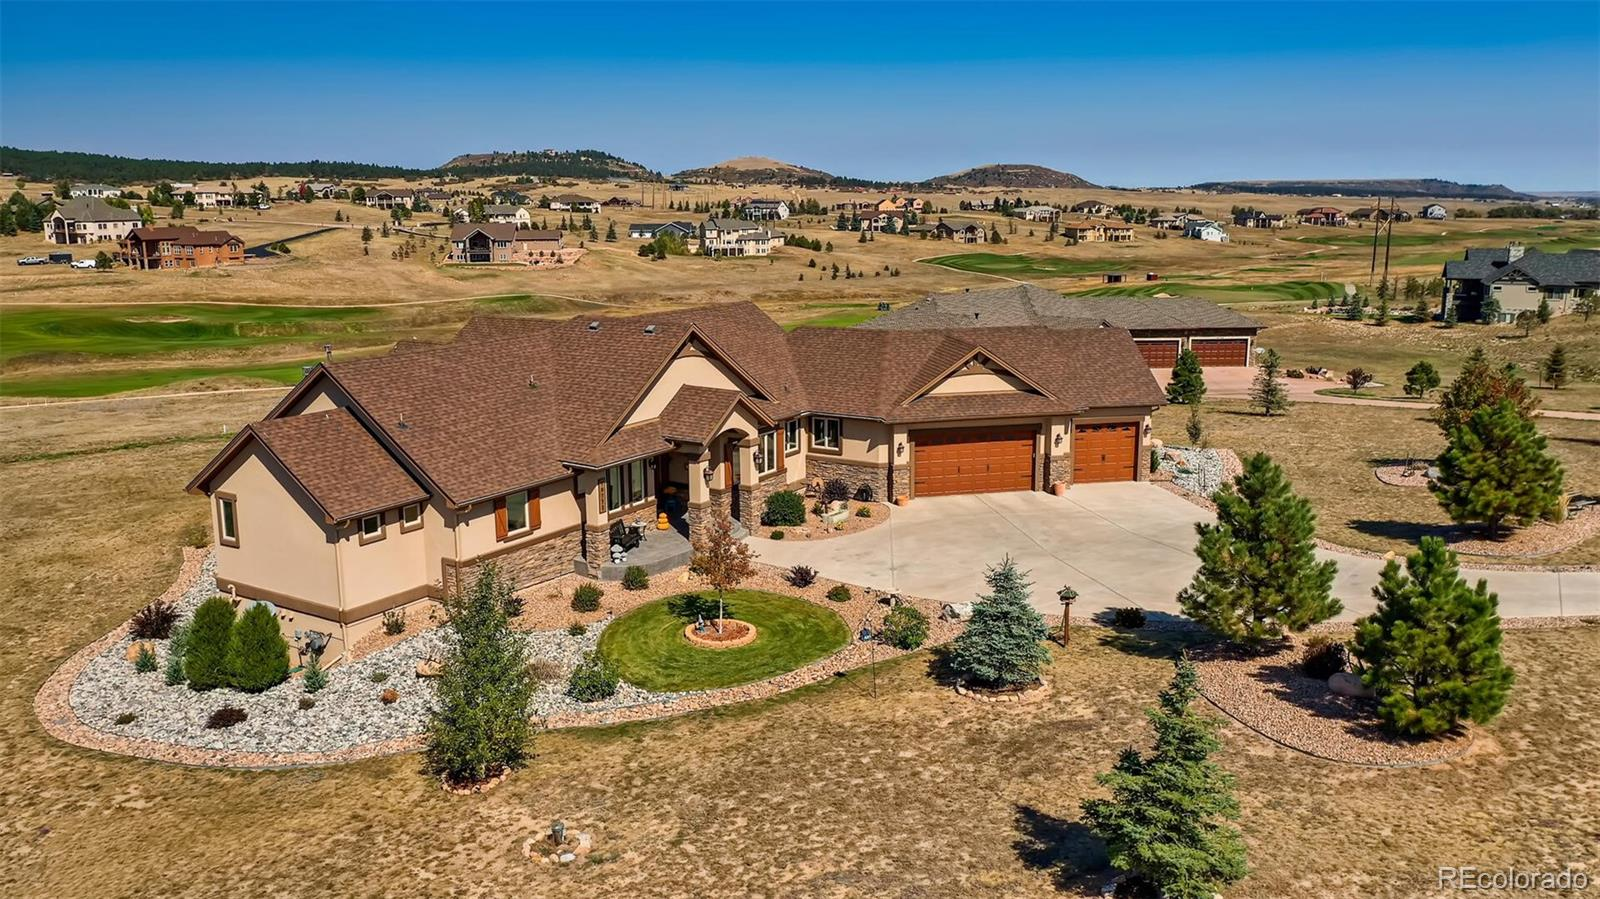 Stunning Custom Home built to the highest standards, you will enjoy Main Floor Living located on a quiet cul-de-sac, situated on 2.5 acres overlooking the King's Deer Golf Course where you can enjoy 18 holes with amazing Pikes Peak & Front Range views. The Sundance model is a Warm and Open floor Plan with dramatic vaulted ceilings, arches, and beams perfect for the most discerning Buyer. Hardwood throughout the main floor, 5 Bedrooms, 5 Baths, 3 Car Oversized Gar. The Chef will love the Spacious well-appointed Gourmet Kitchen, complete with Granite slab countertops, GE stainless steel appl, Gas Cooktop, Walk-through Pantry. Kitchen opens to the warm and inviting Great Rm keeping you connected to the family, the Vaulted Ceilings, Faux Timber Beams, Abundant Light & 2-Story Stone Fireplace make it cozy & inviting. Walk out to your Vaulted Covered Composite Deck, to enjoy the Mountain & Golf Course Views. Gather around the table in the elegant Formal Dining Room with custom features like Crown Molding, Ambient Lighting, and 10' Ceilings. On to the Master where you will feel like Royalty, featuring Vaulted Ceilings, Dbl-Sided FP, & a massive Walk-in-Closet. Step into the Luxurious Master 5-Piece Ba w/Radiant Heated Tile Floors, Huge Walk-in Double Head Zero Entry Euro Shower, His & Her Sinks, & Soaking Tub w/a FP. Utilize one of the main floor Bedrms as an office w/a ¾ bath across the hall. Guests can enjoy a Jr. Suite w/En-Suite Bathroom & walk-in-closet. Enter from the 3-car oversized gar to the bright Daylight Mudrm & Laundry Rm. The Fin Bsmt is an Entertainers Dream with a custom Wet Bar, Media/Home Theater Rm, Game/Pool Table Area, Family Rm that walks out to the Covered Patio to enjoy Panoramic Views, & a beautifully landscaped yard.  The Lower level has an additional 2 Bedrms, 2 Baths & plenty of Storage Space including a Vault & future planned Elevator area (with a Poured Slab). This Gorgeous Retreat will not last long, make it yours today!